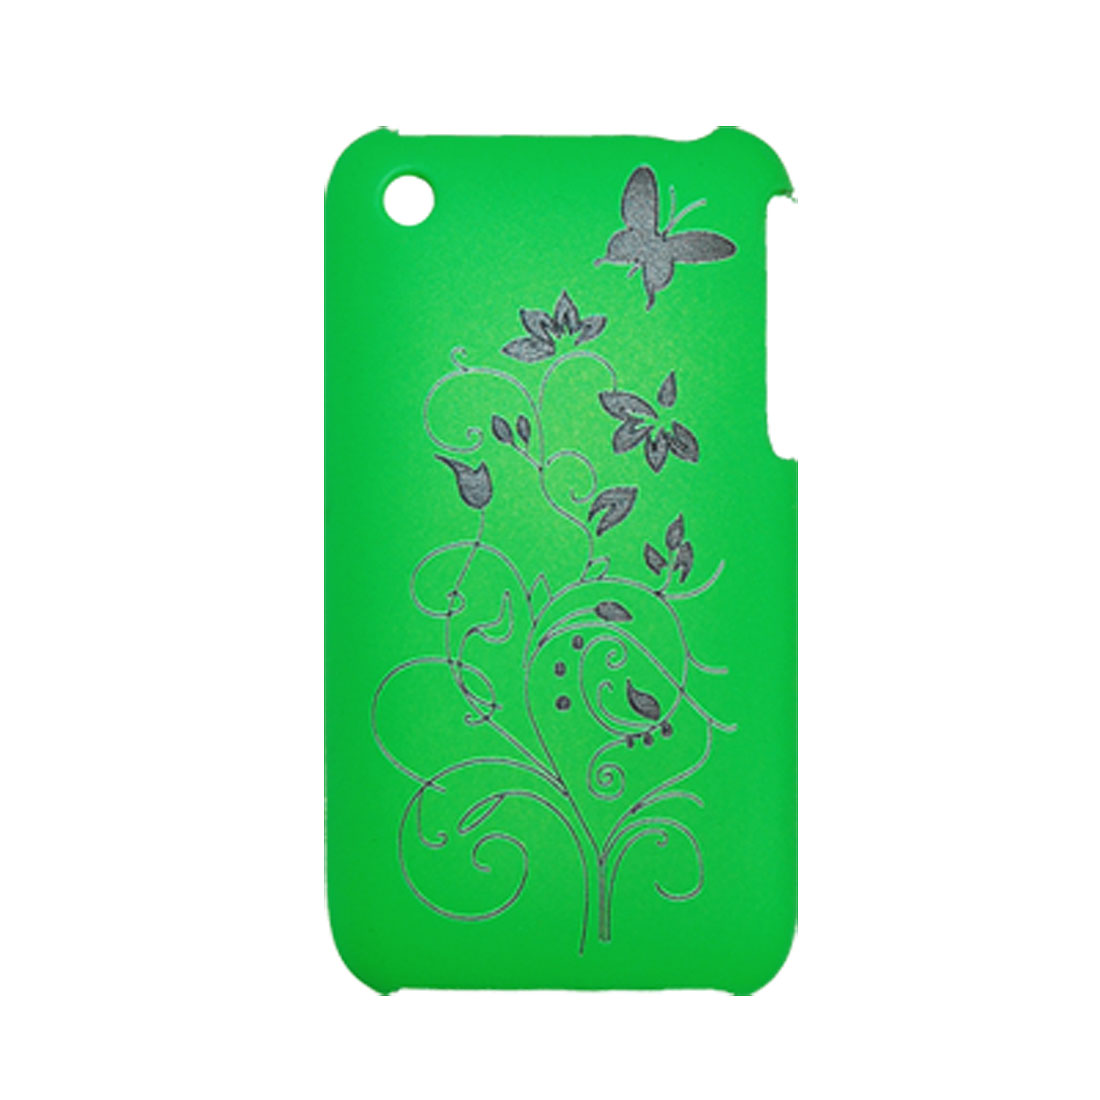 Flower Butterfly Pattern Plastic Case for iPhone 3G Green Cover